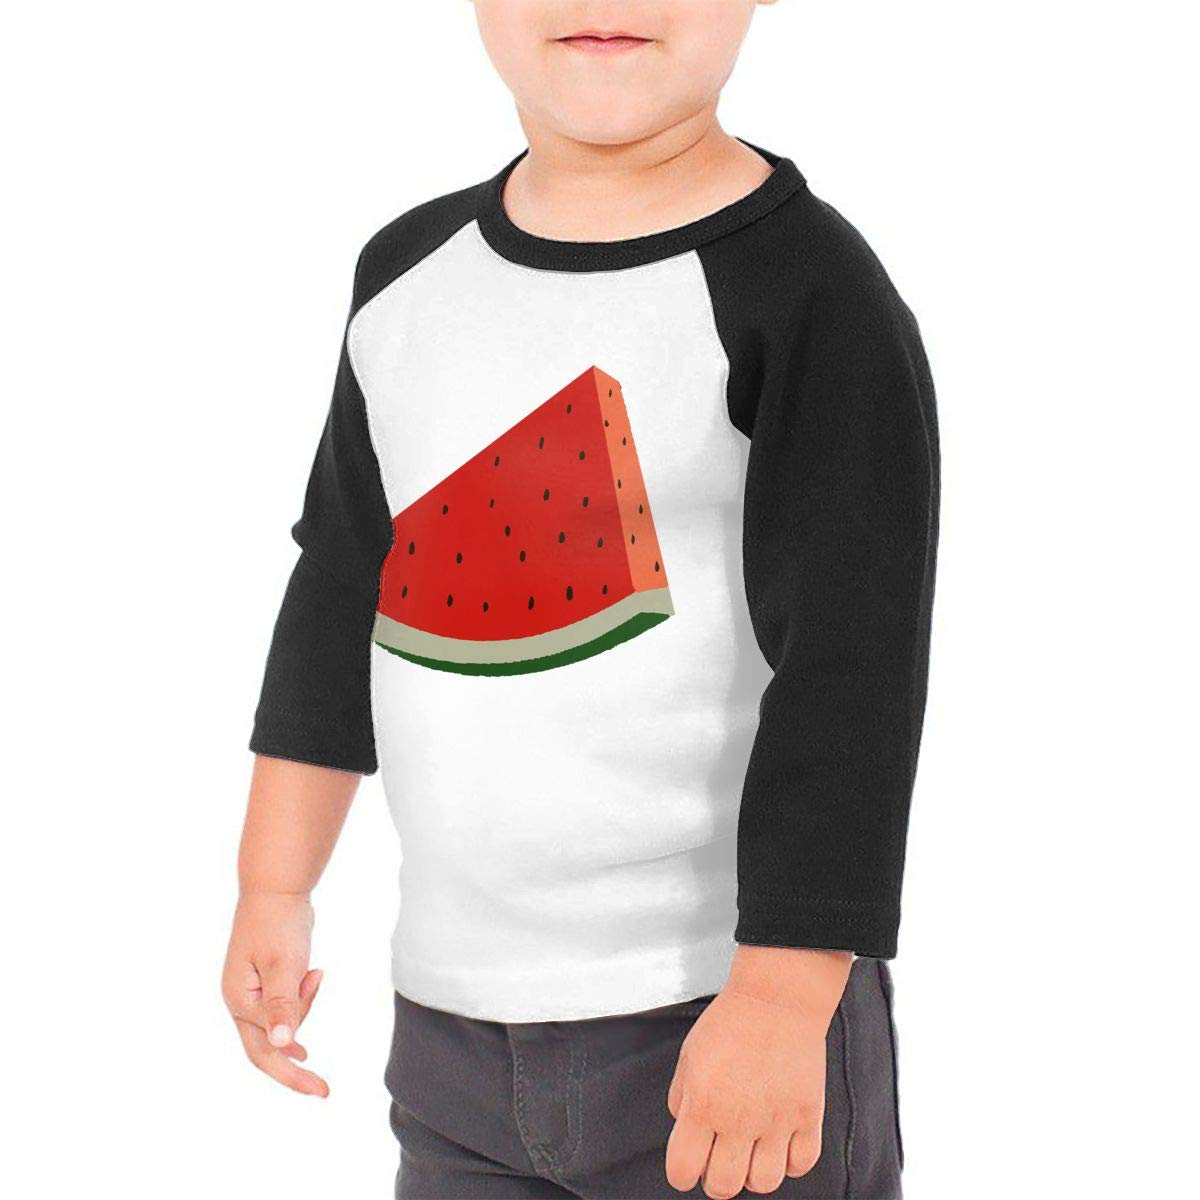 Manlee Watermelon Unisex 100/% Cotton Childrens 3//4 Sleeves T-Shirt Top Tees 2T~5//6T